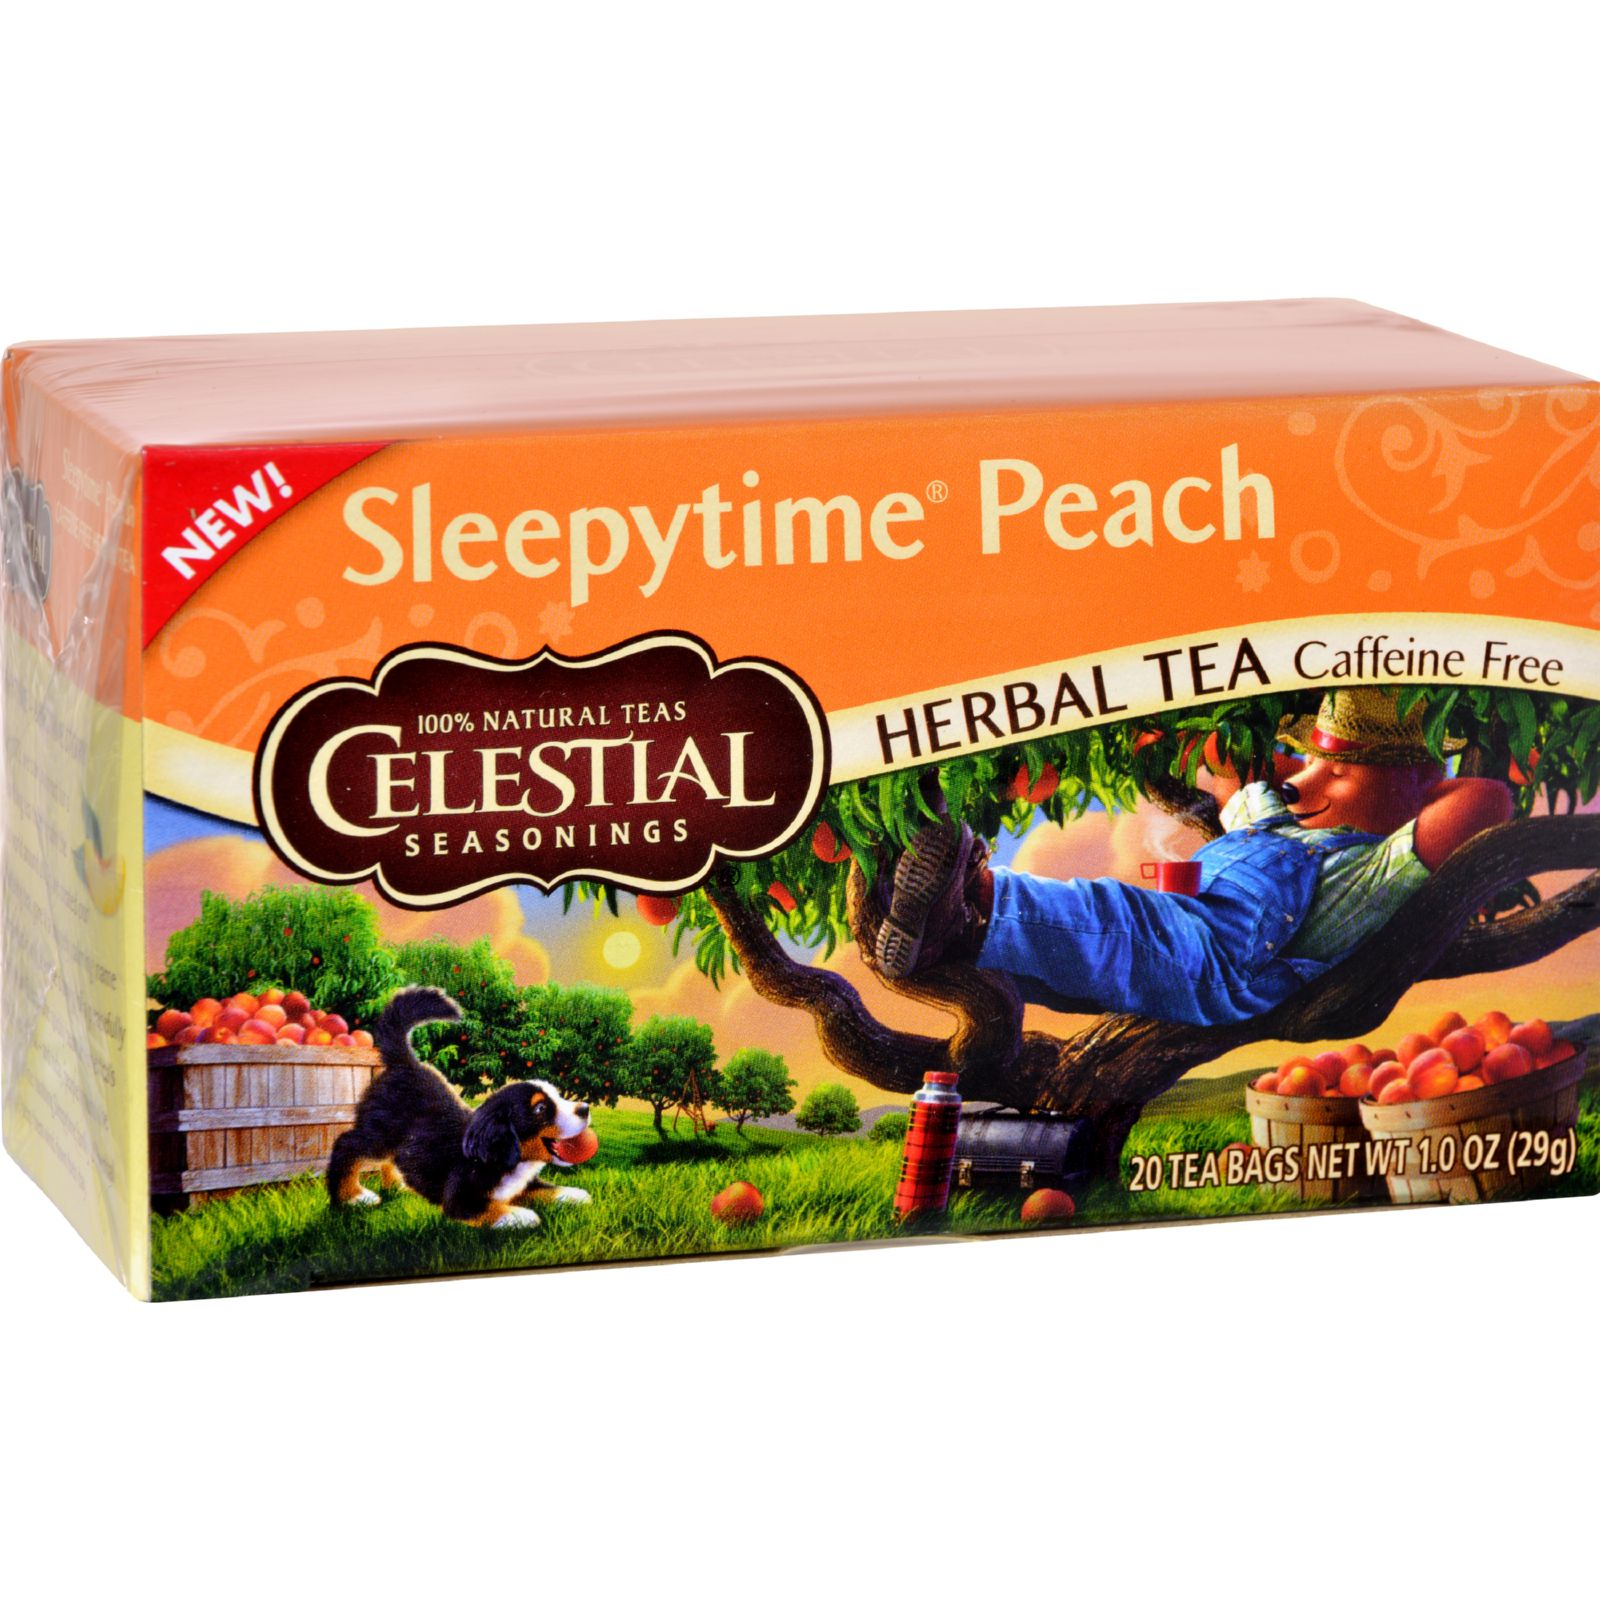 Celestial Seasonings Herbal Tea Sleepytime Peach - (Case of 6) - 20 Bag